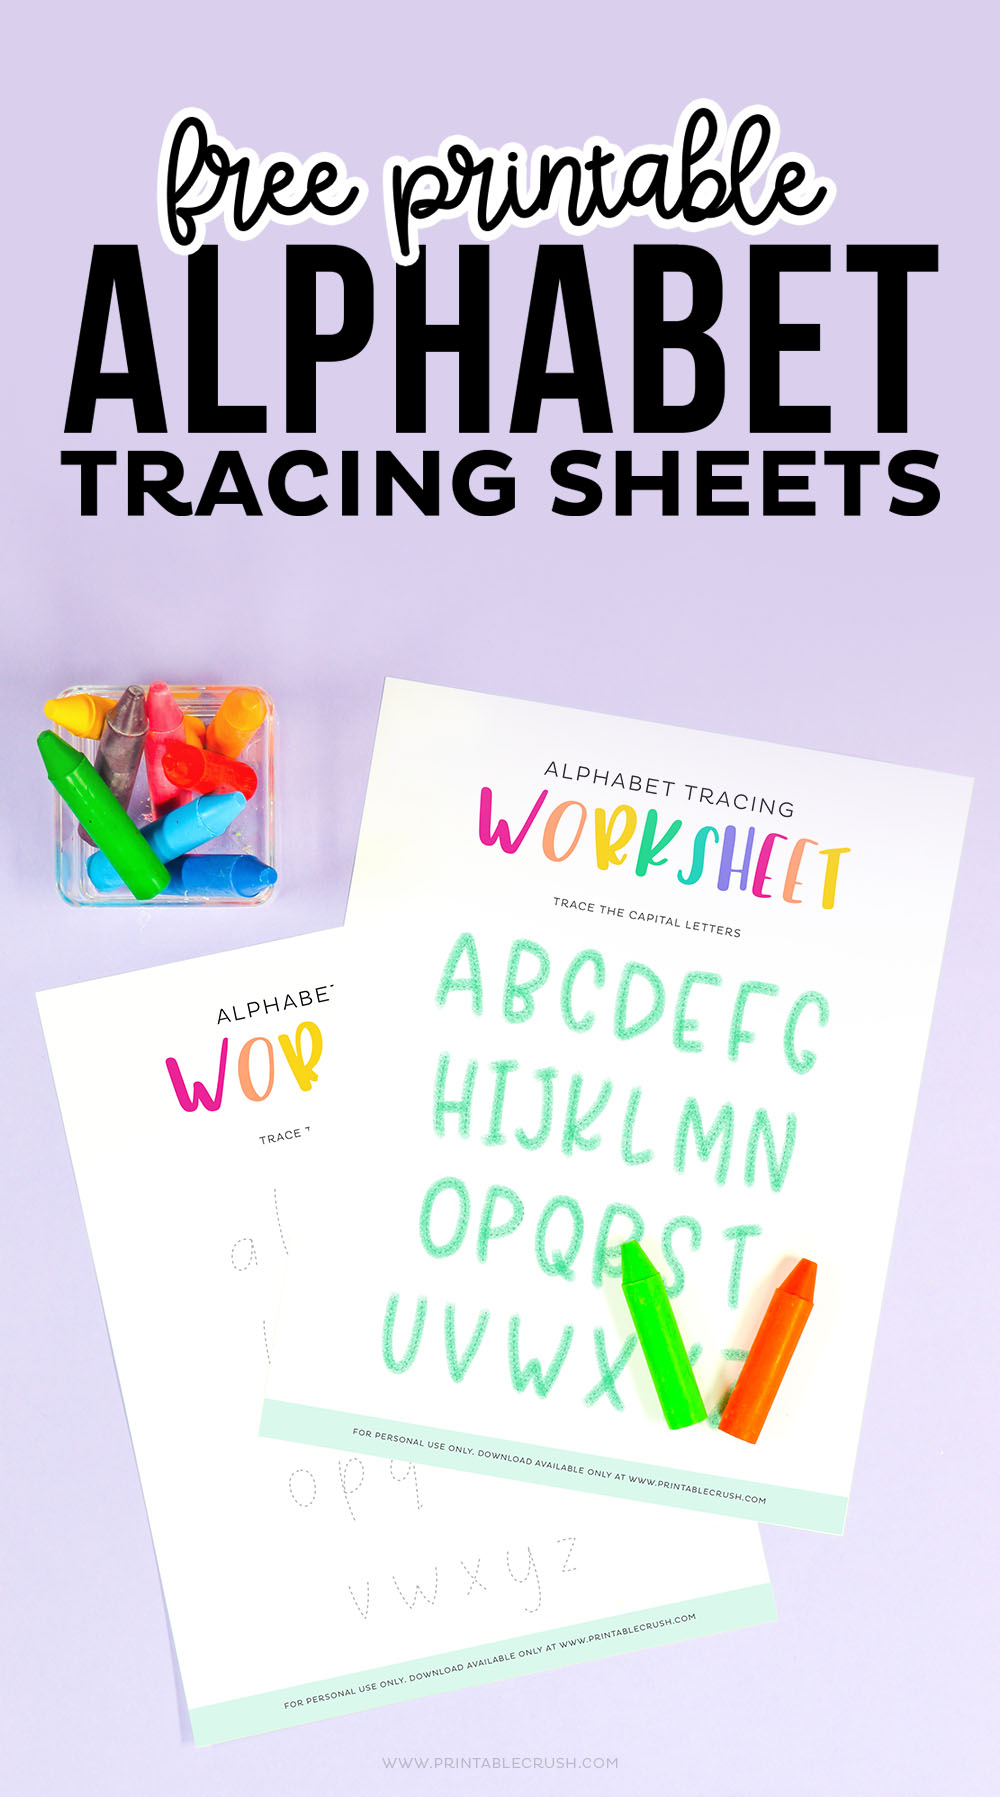 Alphabet Tracing Activity for Preschoolers - Easy Printable Alphabet Tracing - Kindergarten Activity - Preschool Activity - Printable Crush